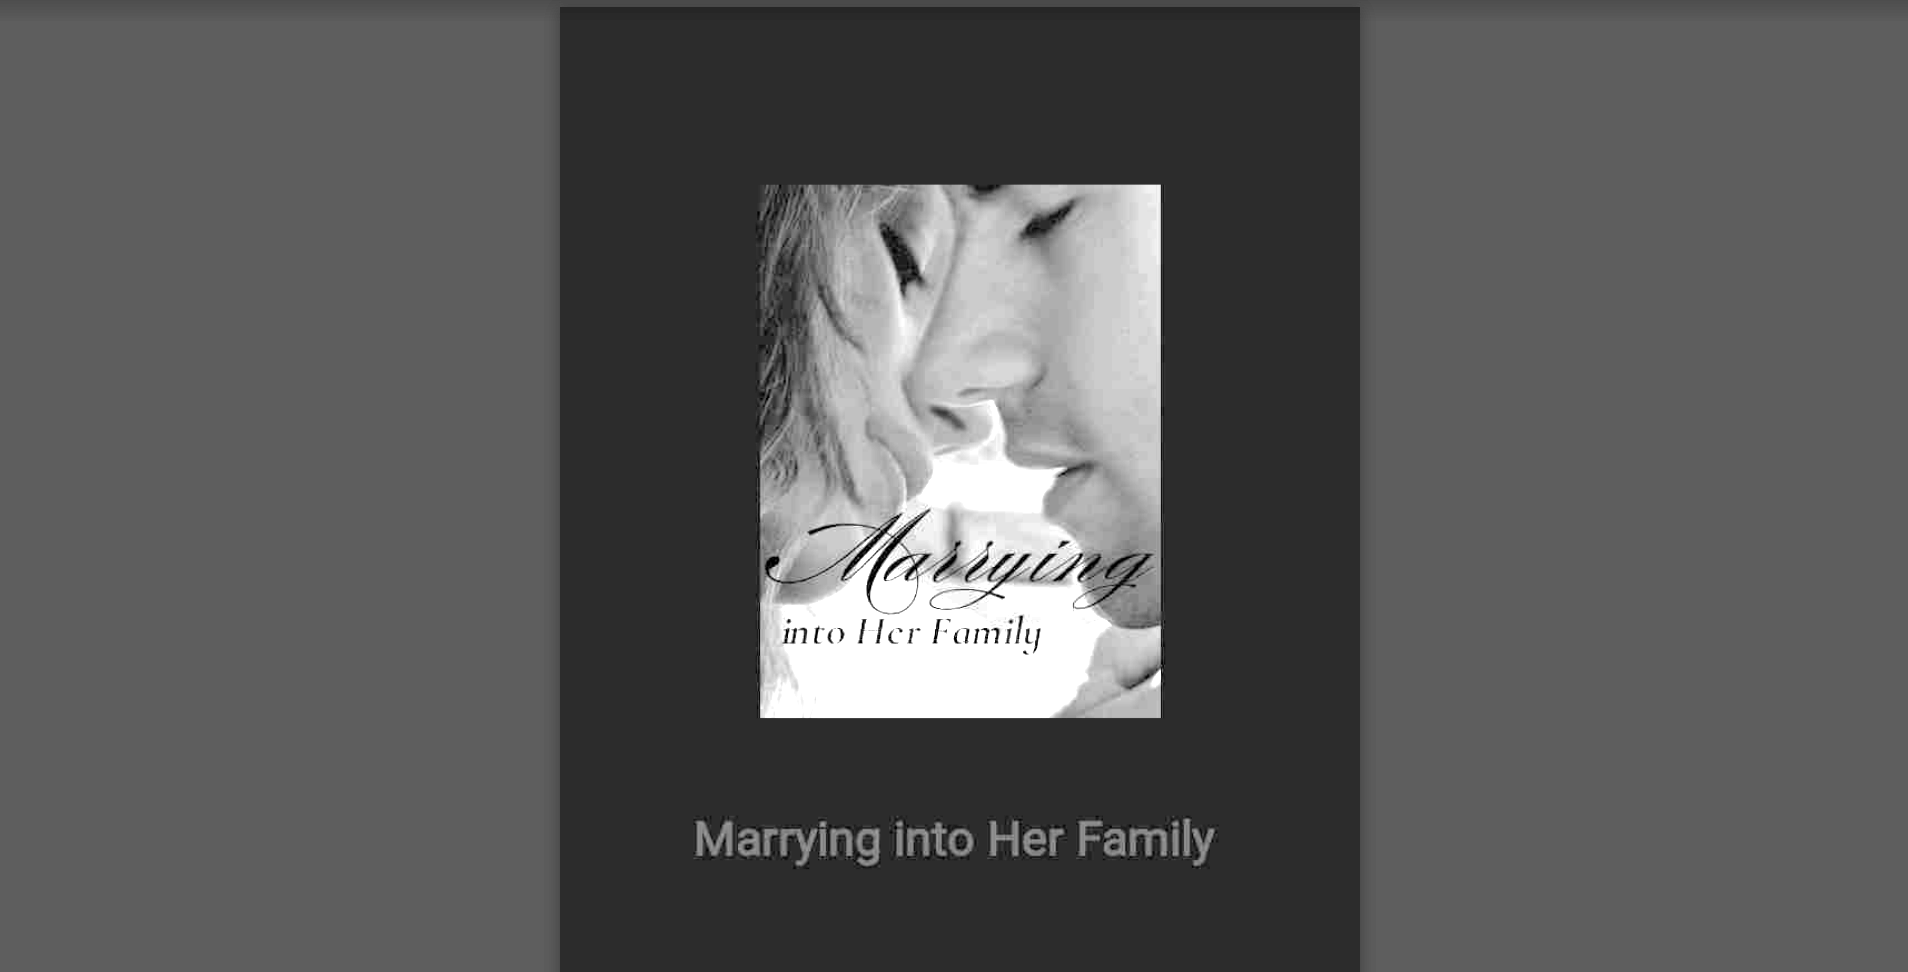 Marrying into her family novel